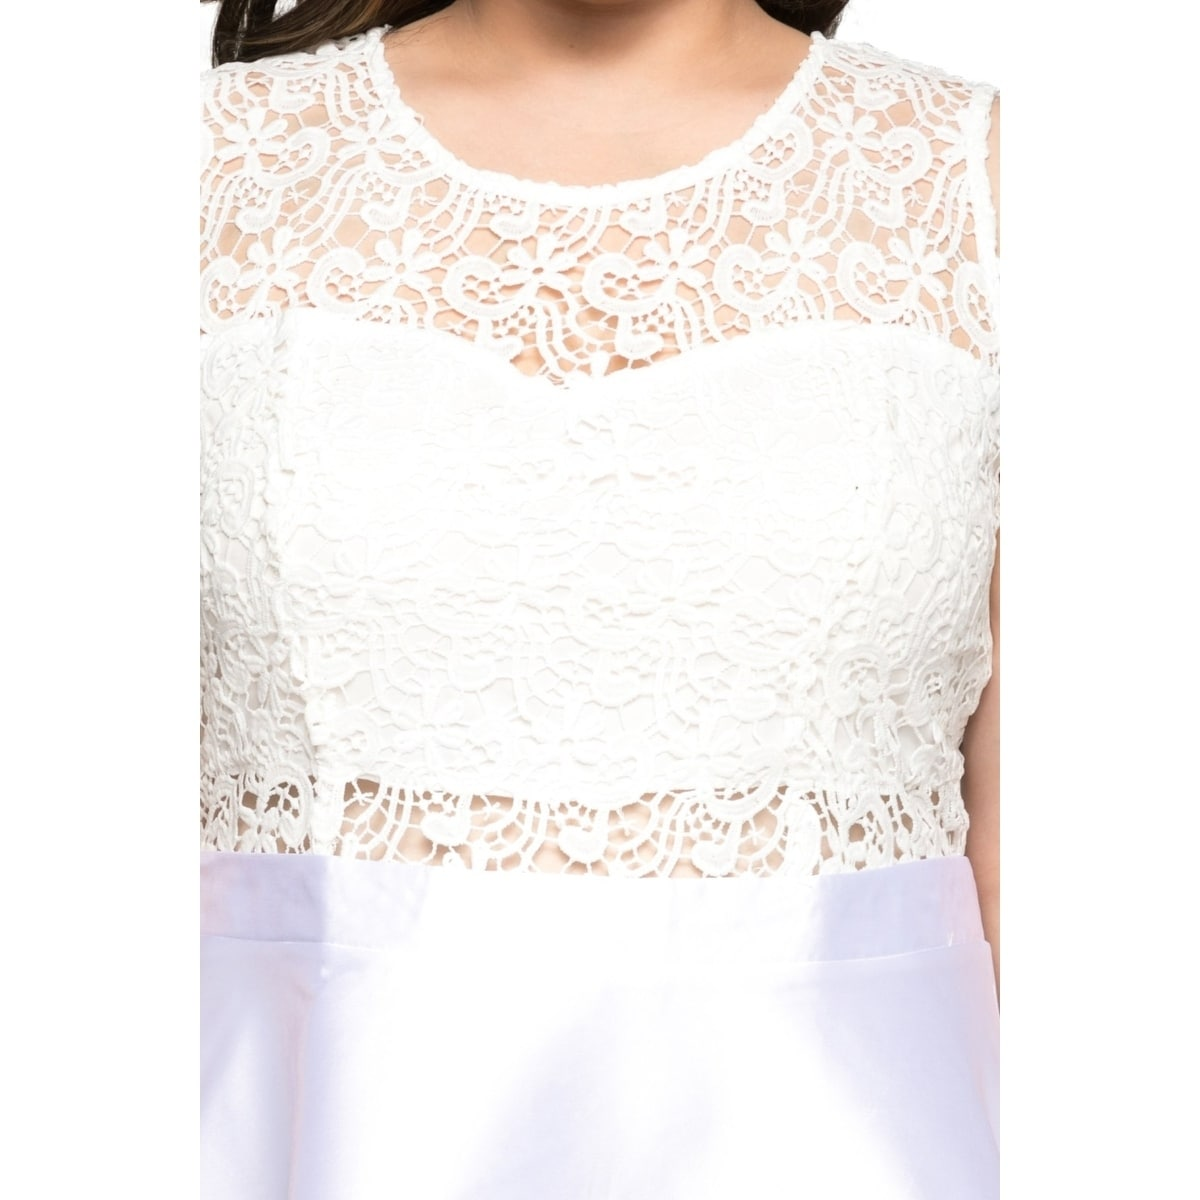 03fa460b210 Shop Xehar Womens Plus Size Sleeveless Lace Top Evening Party Short Dress -  Free Shipping Today - Overstock - 20529629